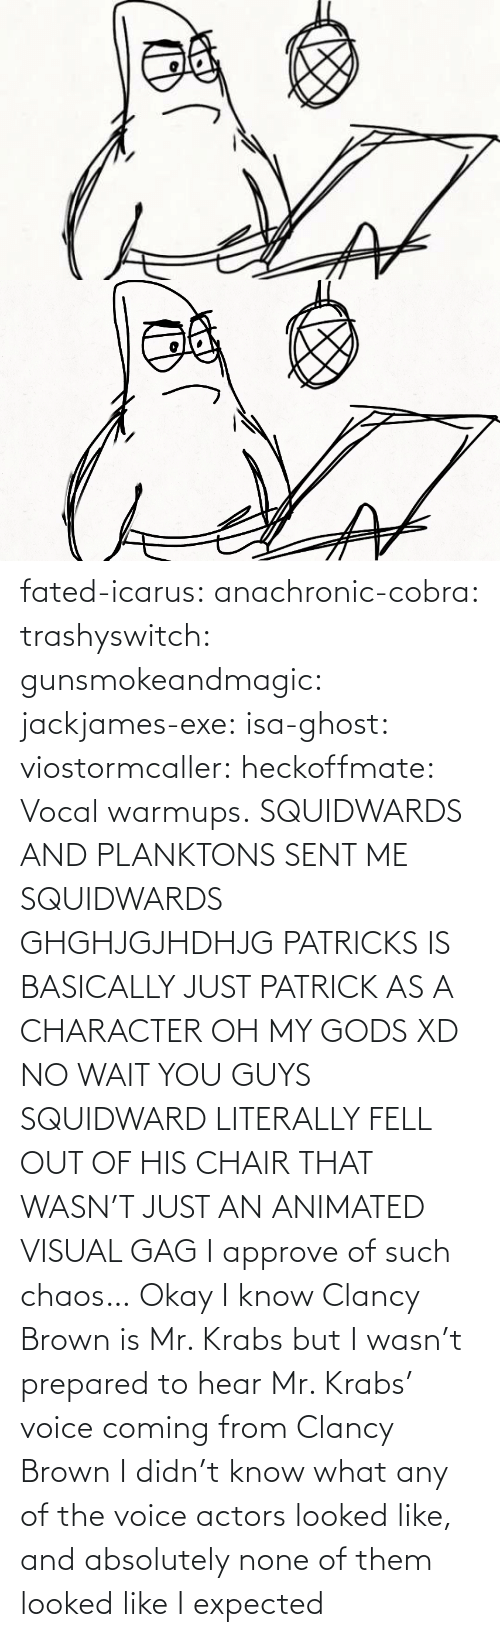 url: fated-icarus:  anachronic-cobra: trashyswitch:  gunsmokeandmagic:  jackjames-exe:  isa-ghost:   viostormcaller:  heckoffmate: Vocal warmups. SQUIDWARDS AND PLANKTONS SENT ME  SQUIDWARDS GHGHJGJHDHJG   PATRICKS IS BASICALLY JUST PATRICK AS A CHARACTER OH MY GODS XD   NO WAIT YOU GUYS SQUIDWARD LITERALLY FELL OUT OF HIS CHAIR THAT WASN'T JUST AN ANIMATED VISUAL GAG    I approve of such chaos…    Okay I know Clancy Brown is Mr. Krabs but I wasn't prepared to hear Mr. Krabs' voice coming from Clancy Brown    I didn't know what any of the voice actors looked like, and absolutely none of them looked like I expected